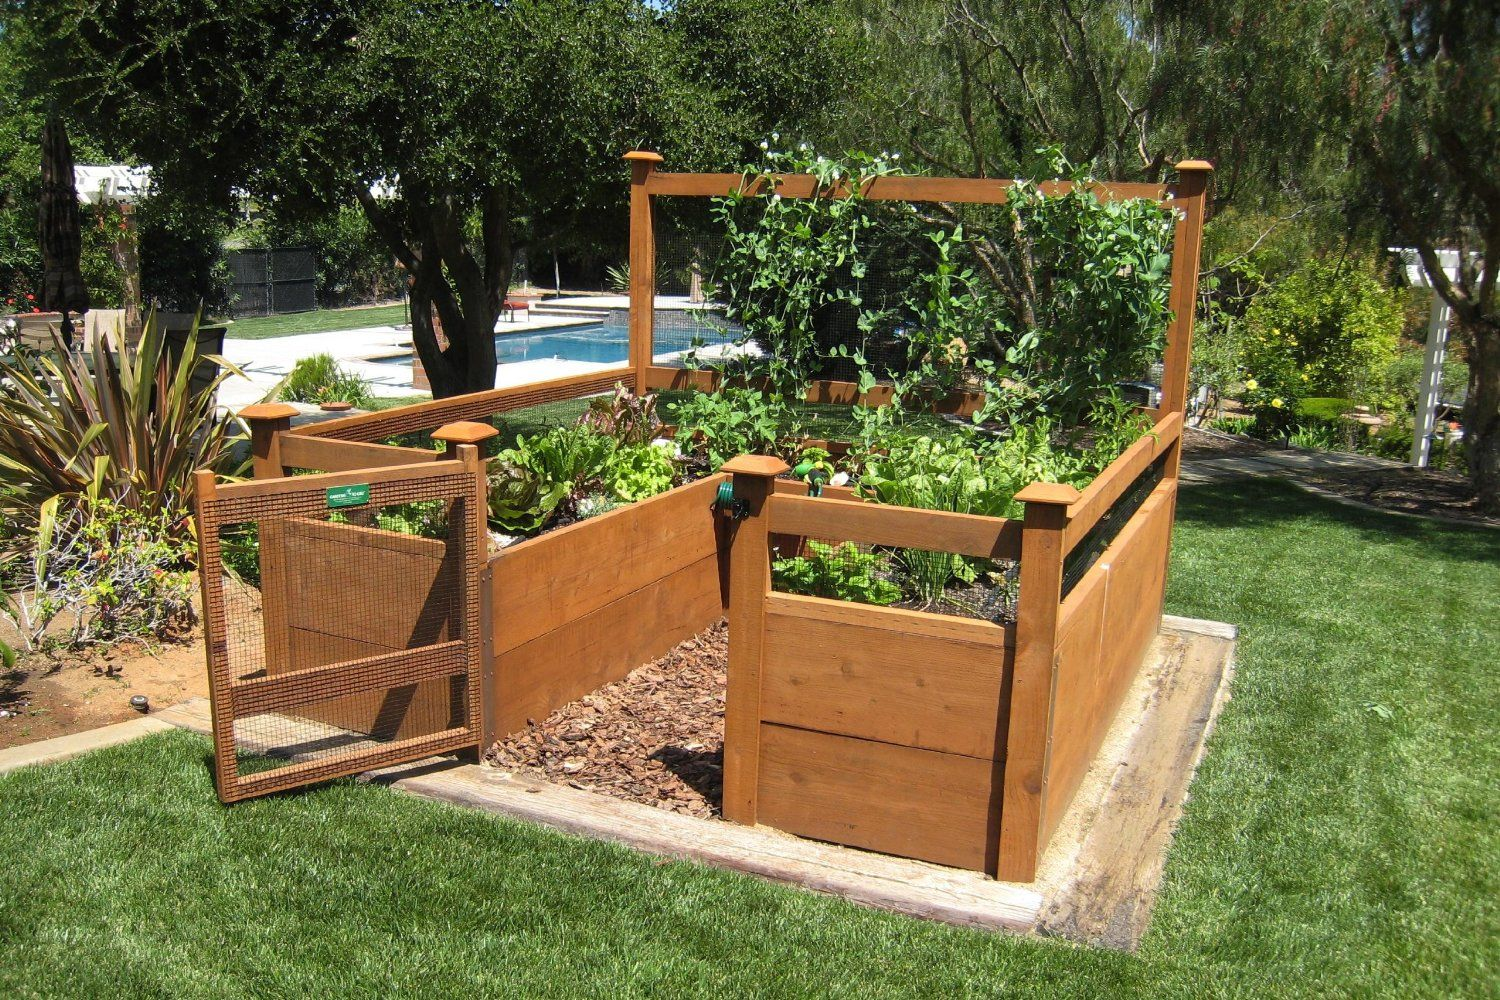 Amazon.com : Just Add Lumber Vegetable Garden Kit - 8'x8' Deluxe : Raised Garden Kits : Patio, Lawn & Garden